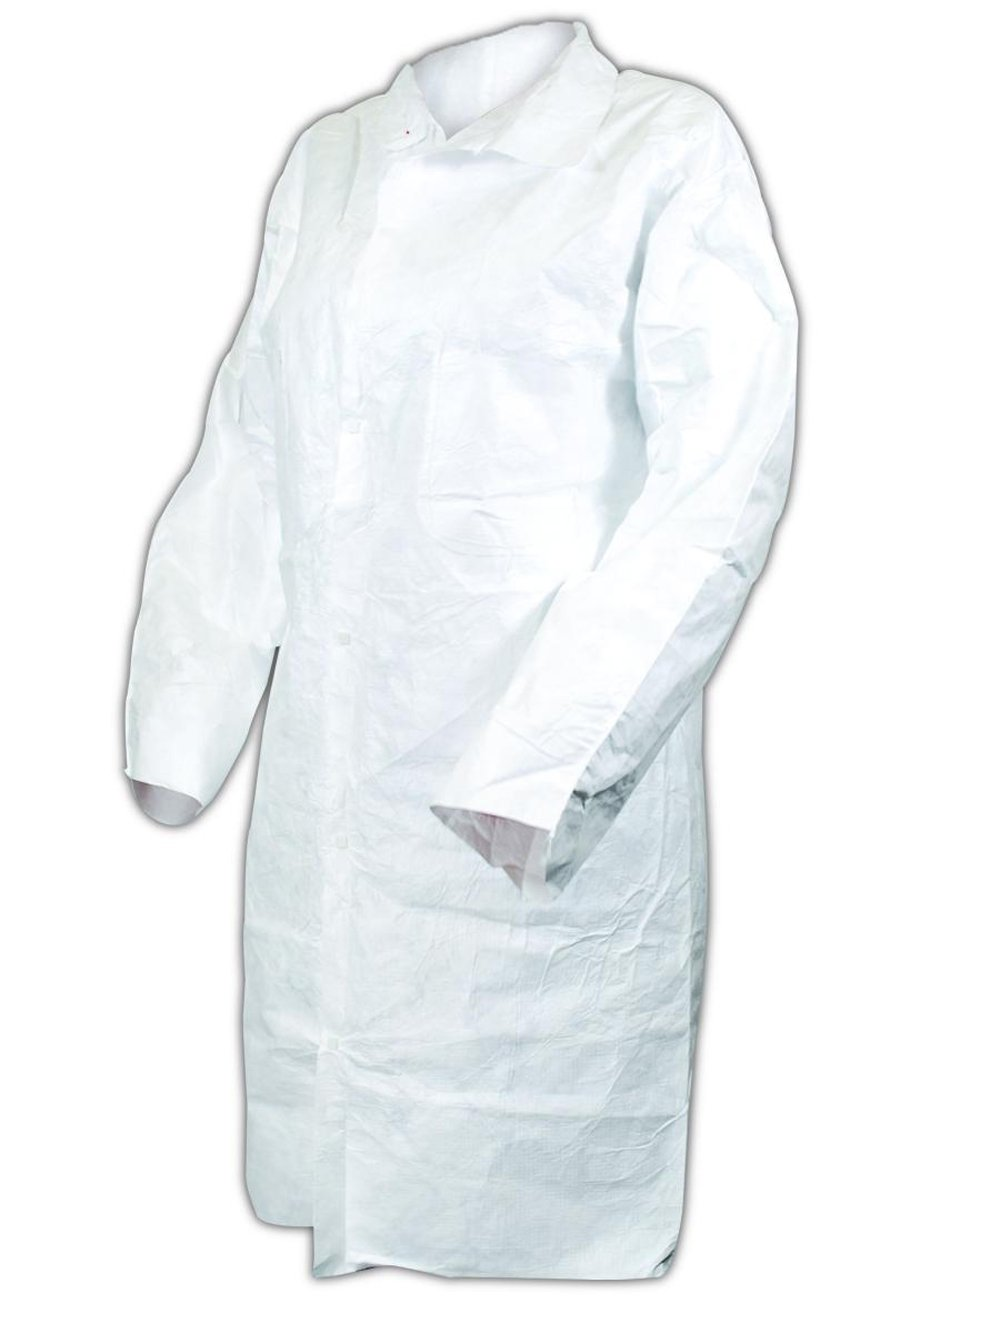 Magid C115L EconoWear Tyvek Disposable Lab Coat with Collar and Two Patch Pockets, Large, White  (Case of 30)